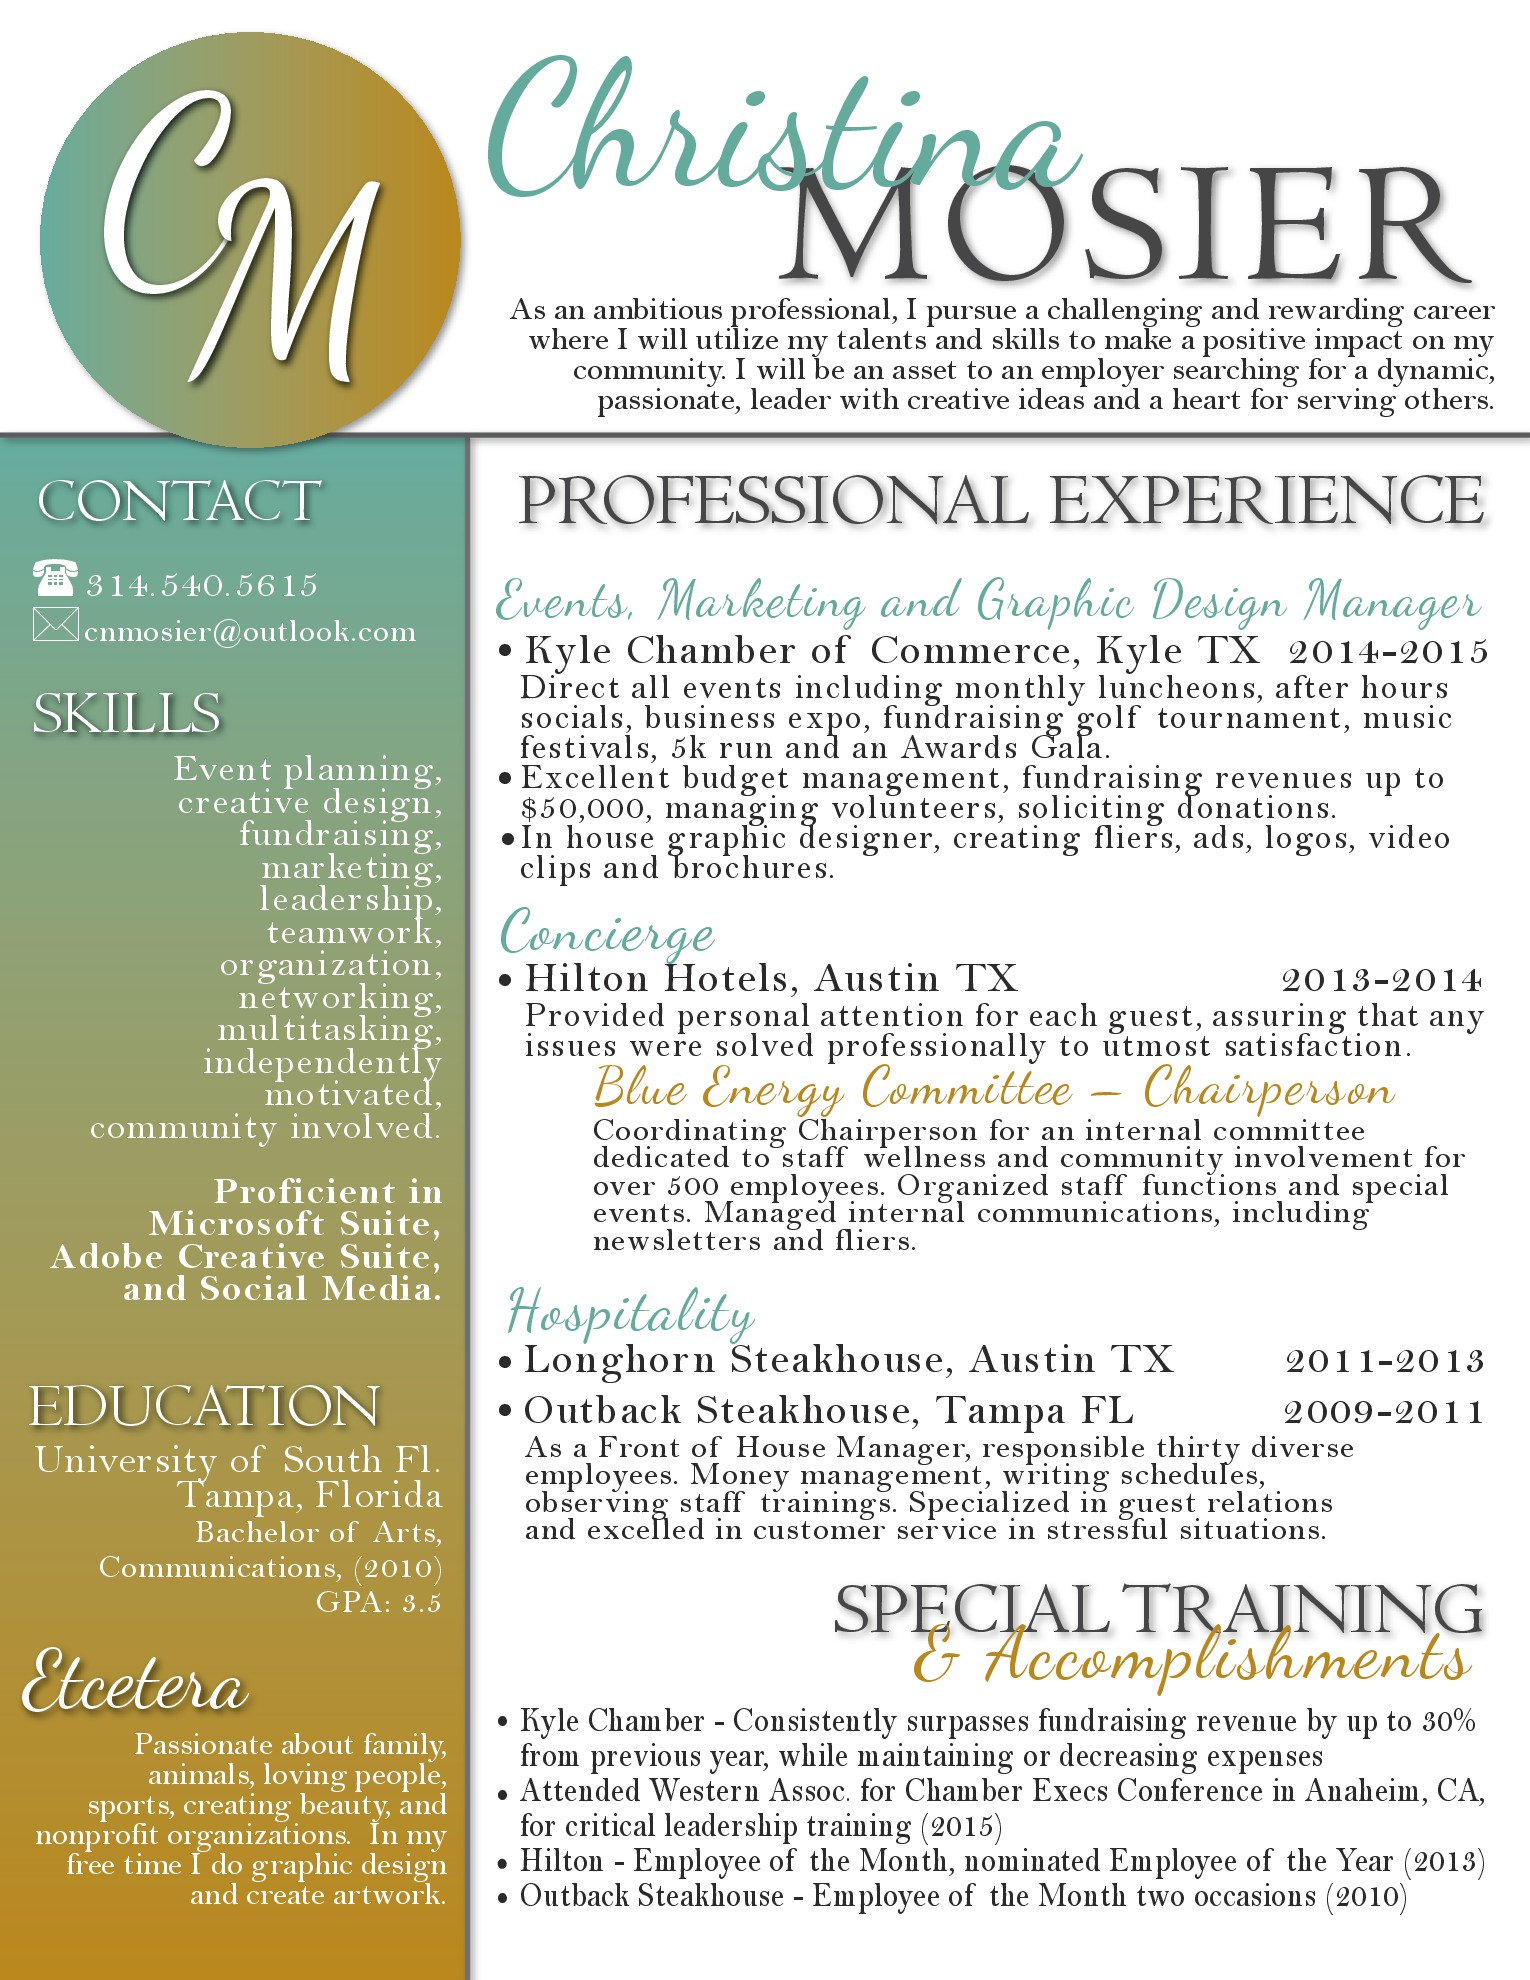 Tommy Johnson Christina Mosier Resume Resume Writing By Tommy